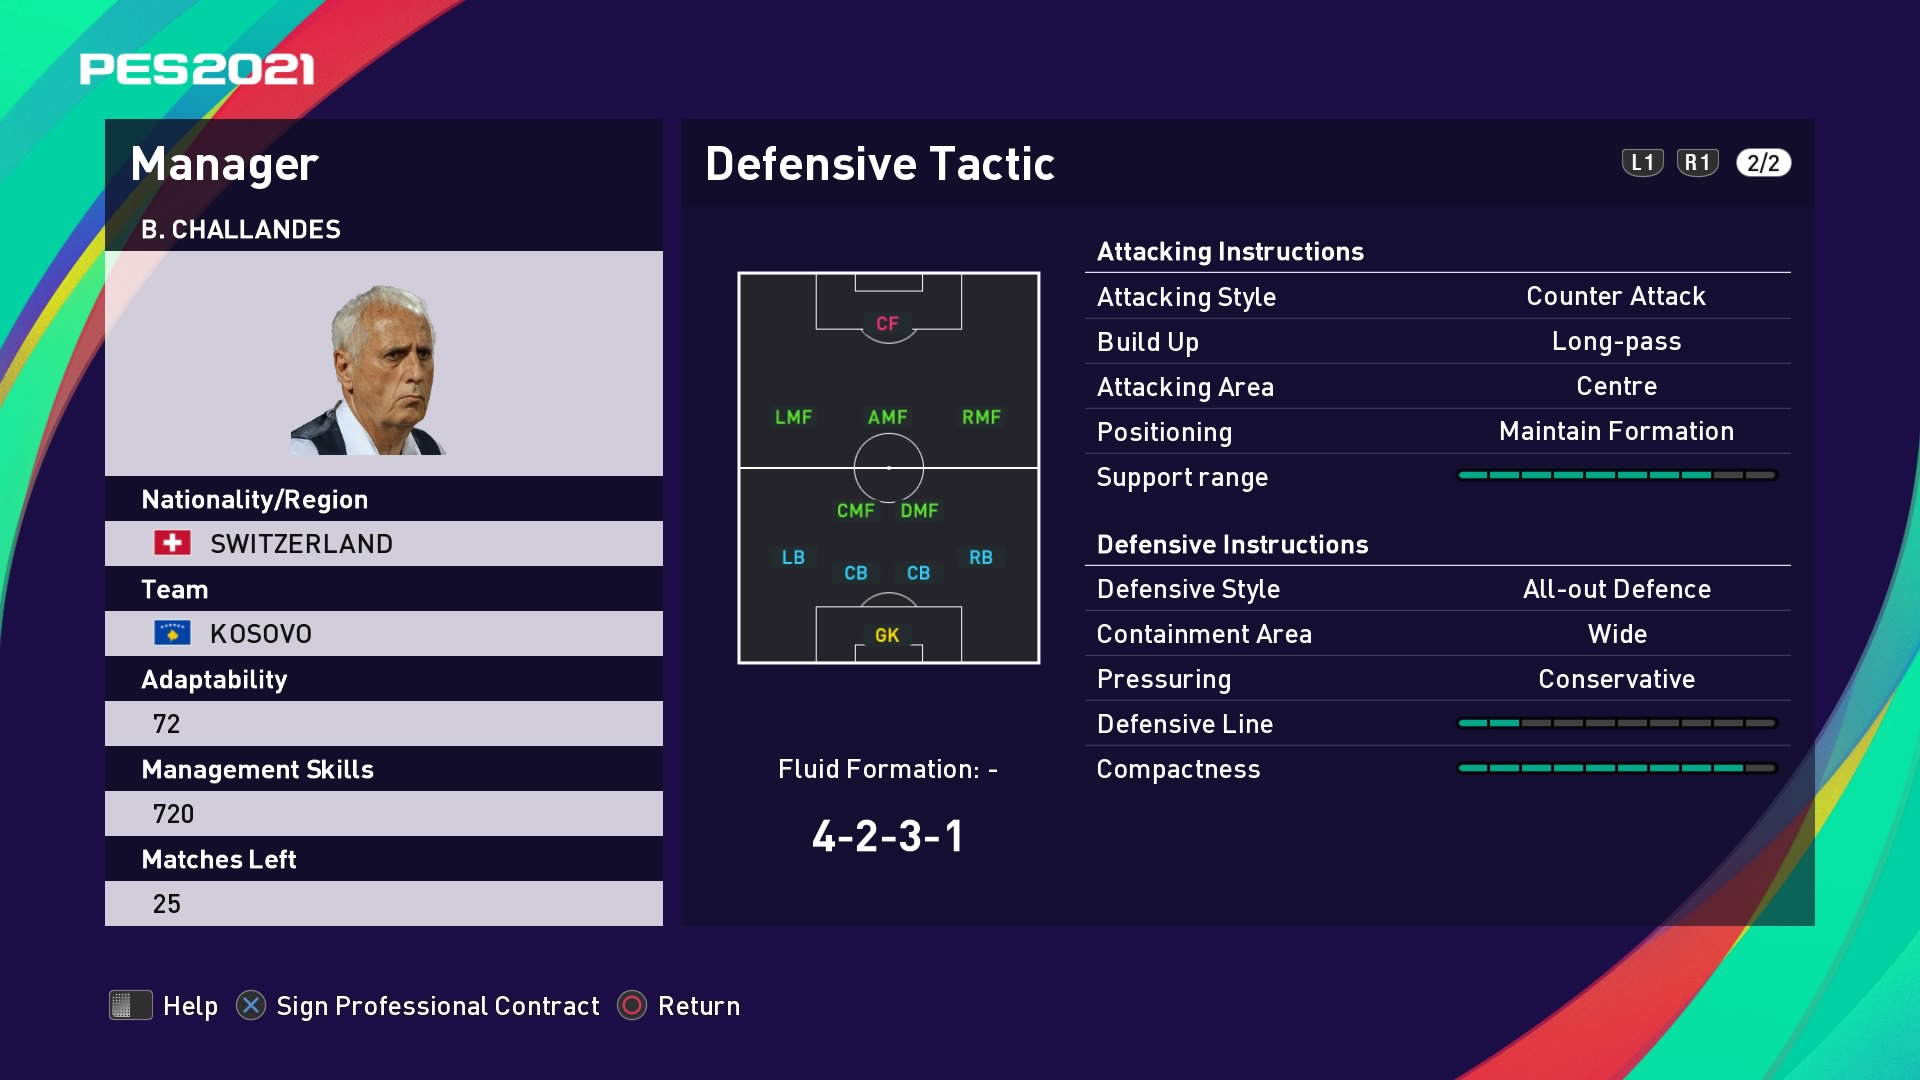 B. Challandes (Bernard Challandes) Defensive Tactic in PES 2021 myClub